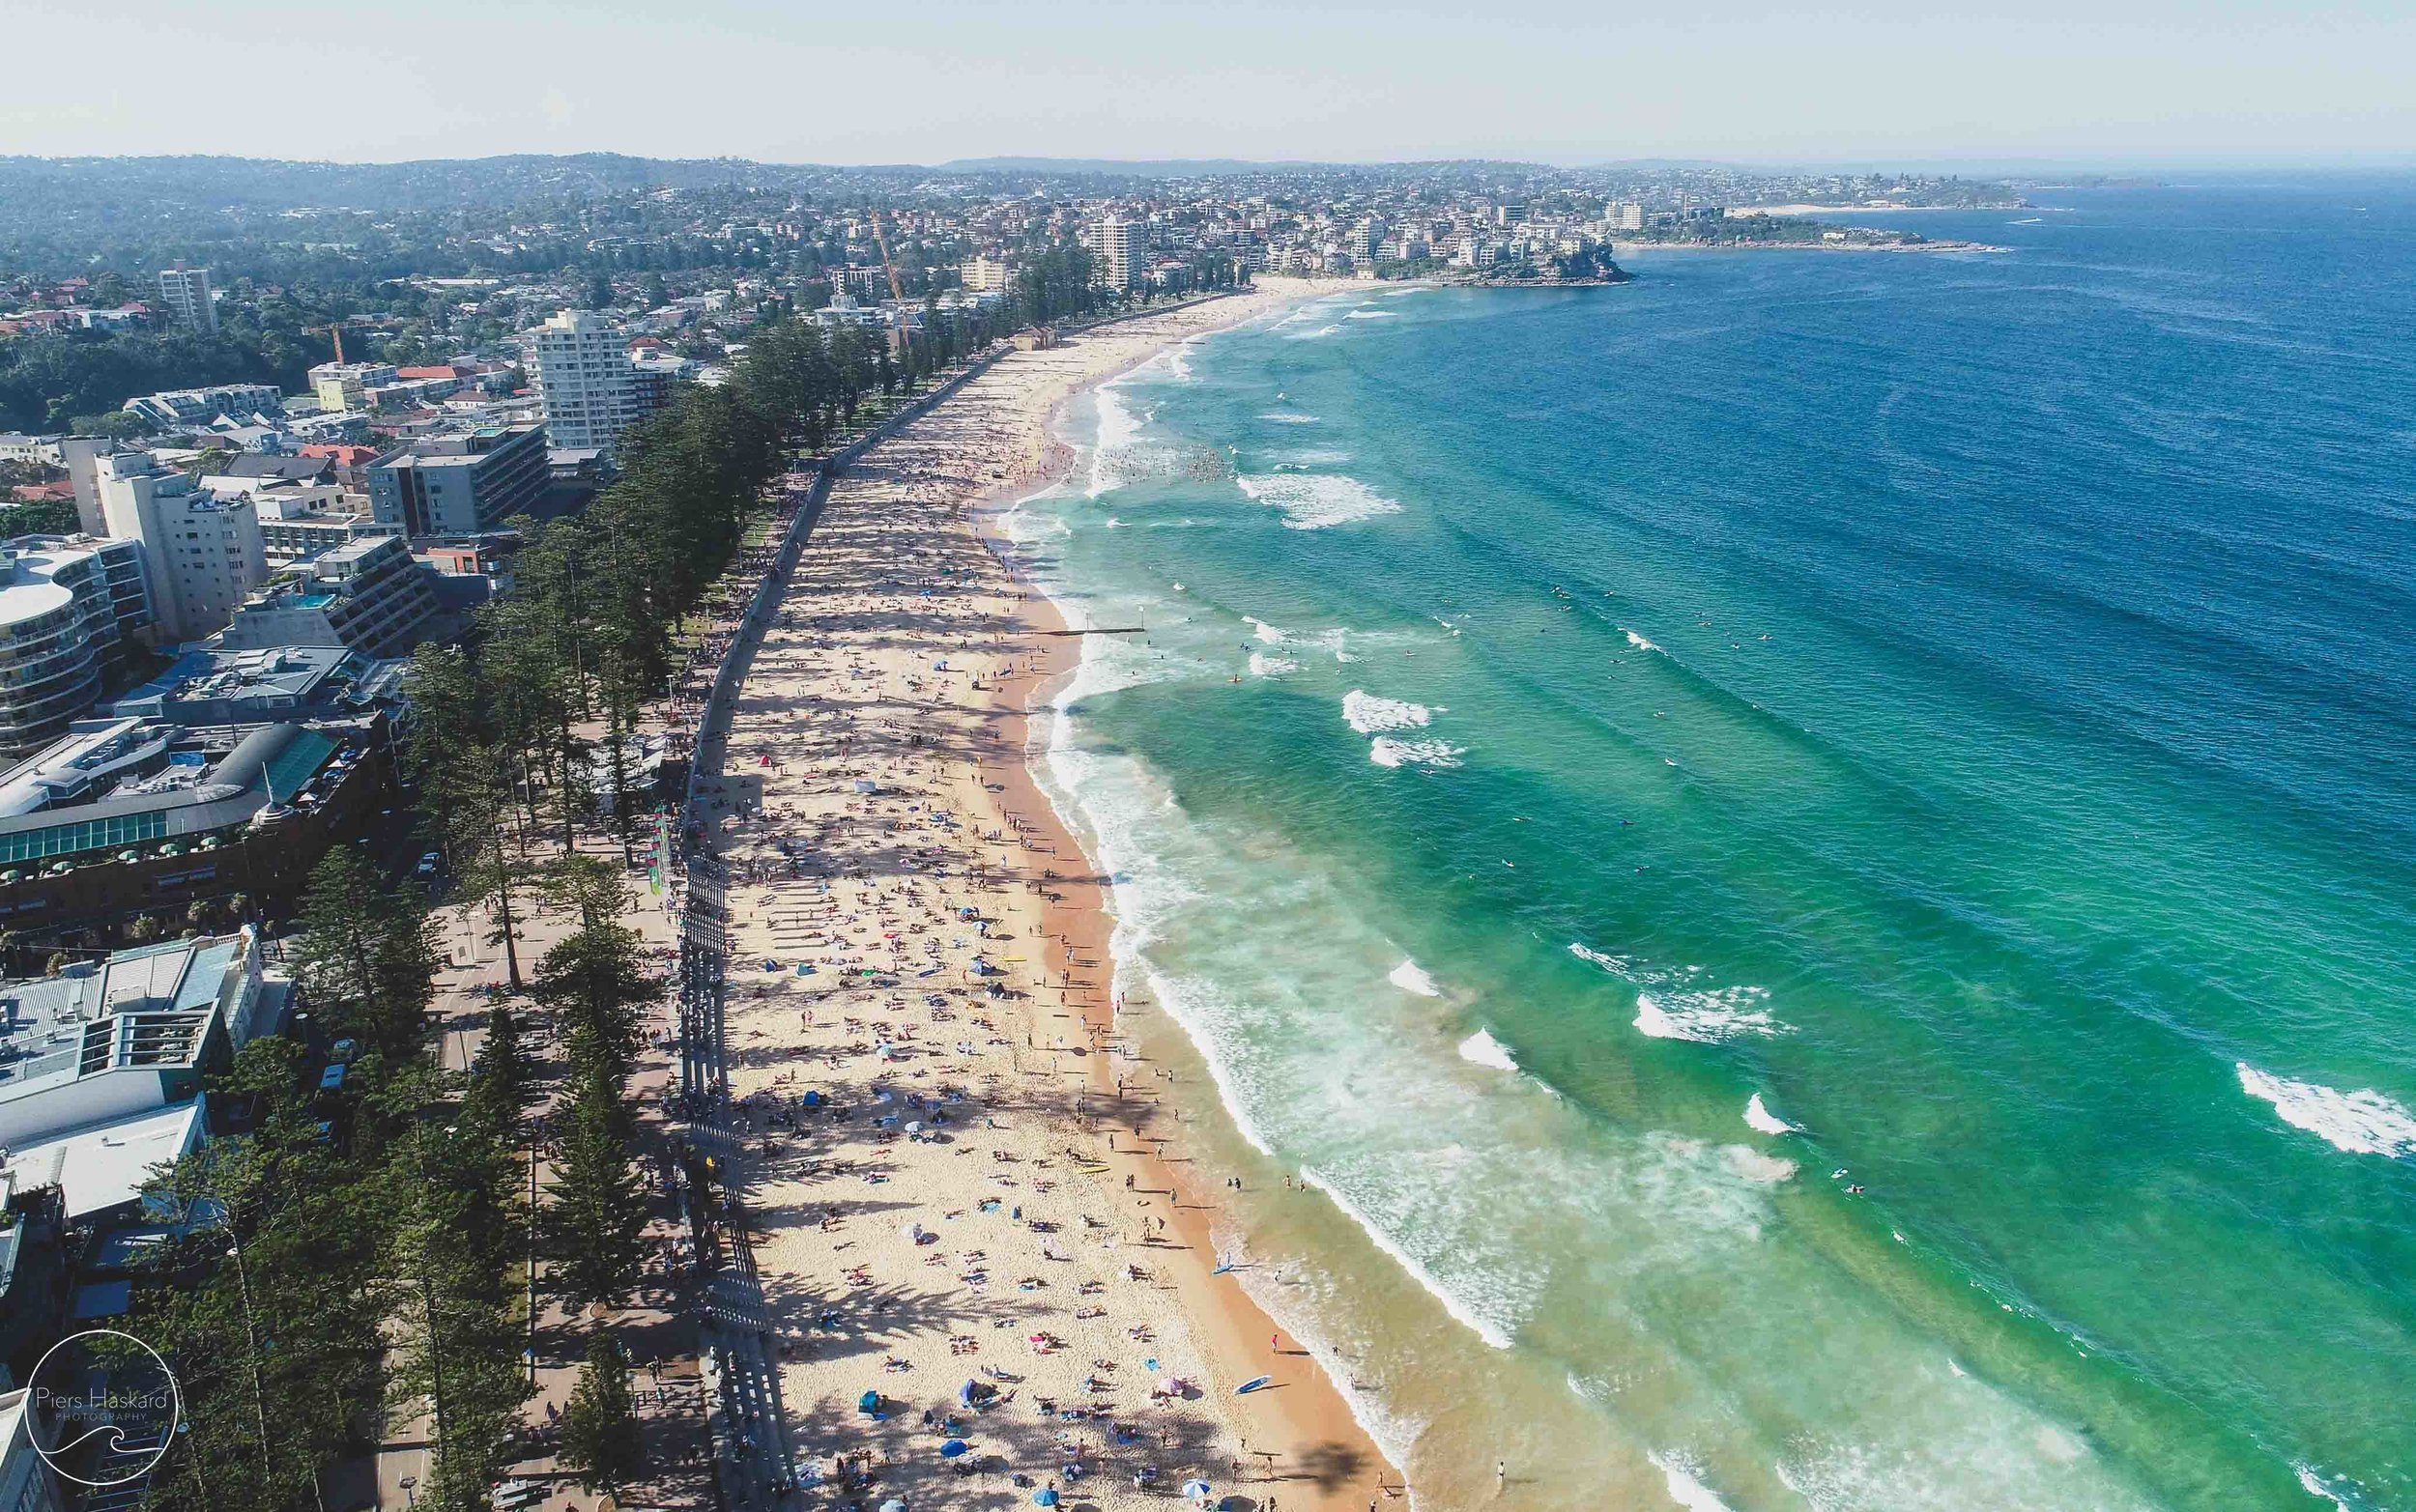 Manly Beach. What a sight. Locals and tourists alike flock to one of Sydney's most popular beaches.